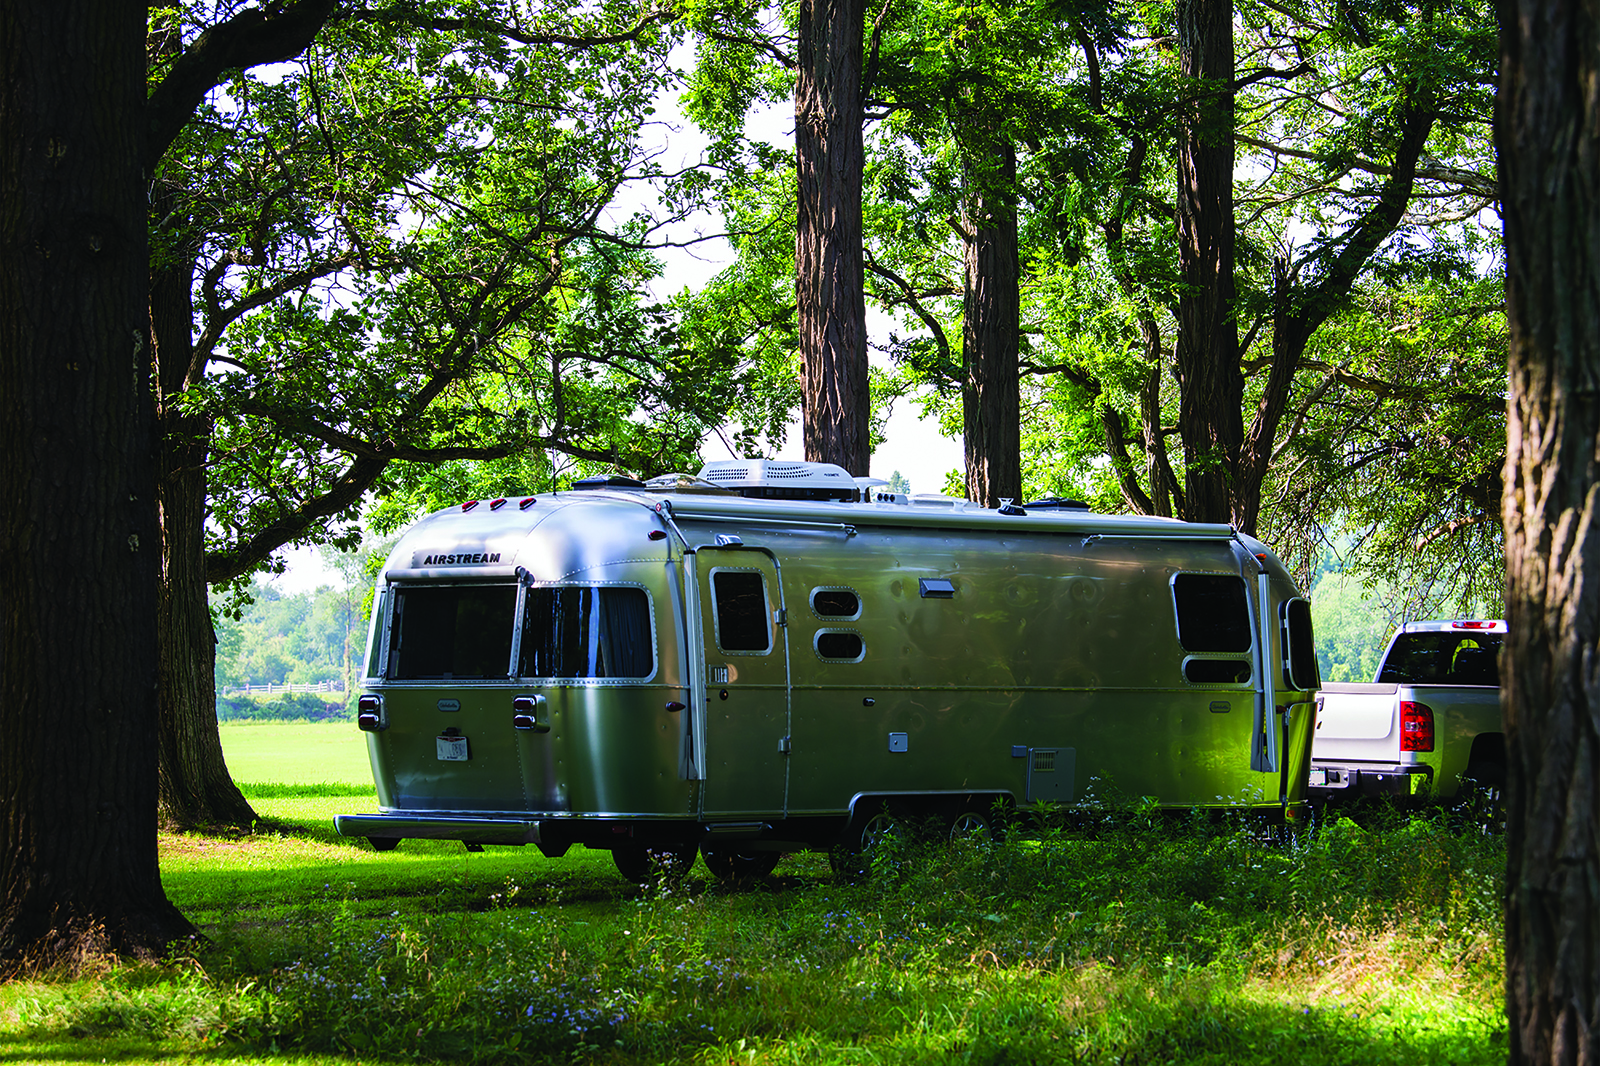 What It's Like to Drive an Airstream